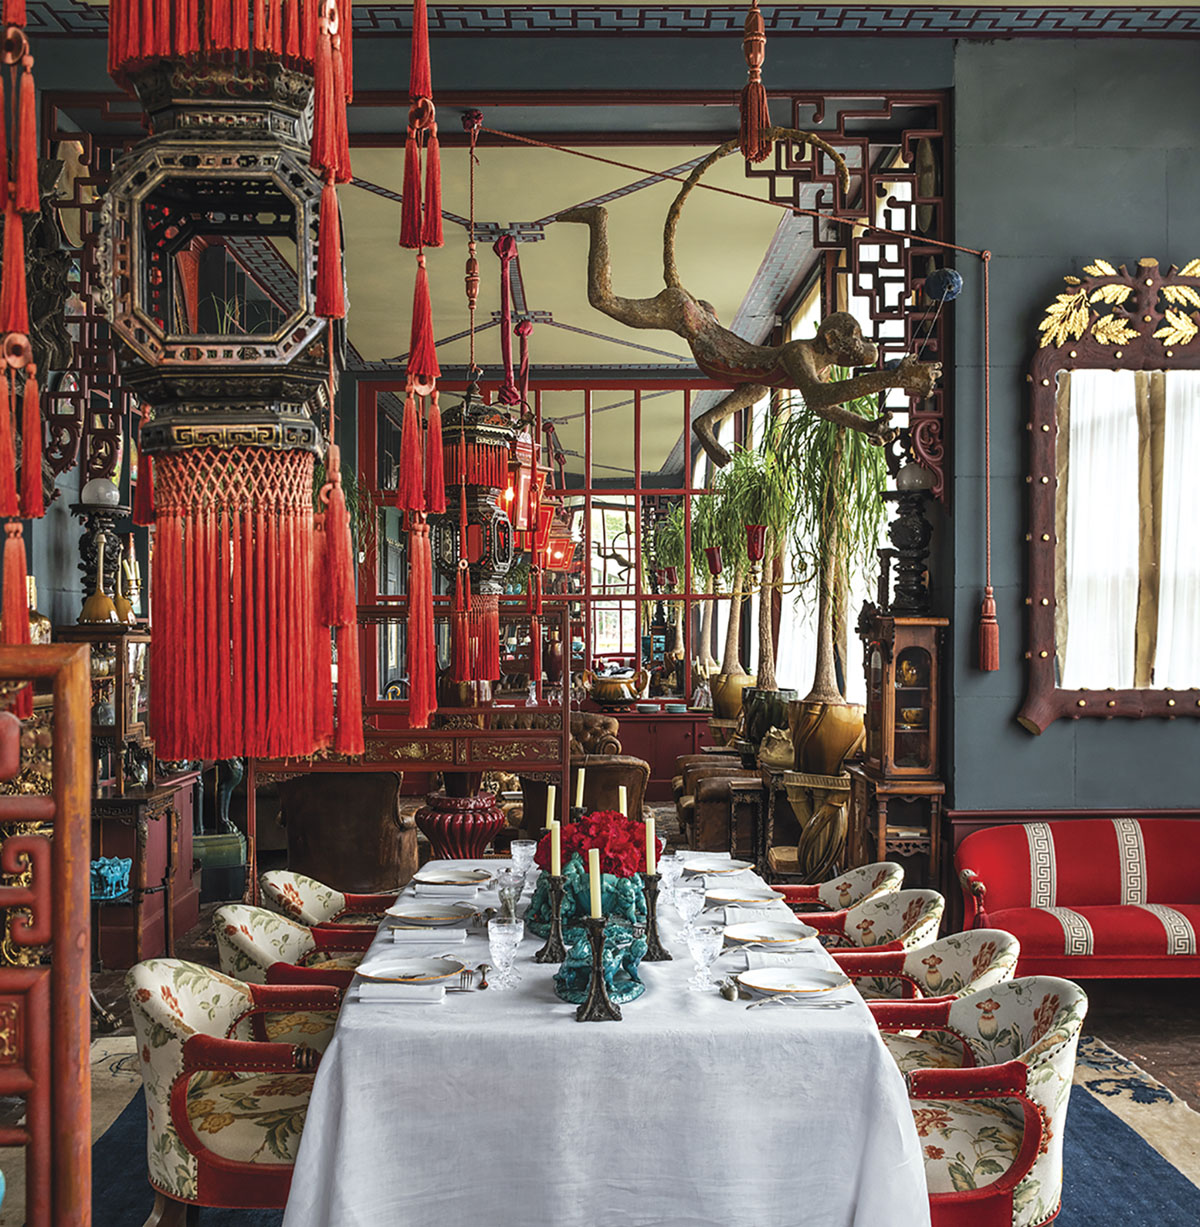 A table for 6 in a Chinese-inspired dining room. The primary color is dusty blue with bright red accents. From the pages of Be My Guest by Pierre Sauvage and Olivia Roland